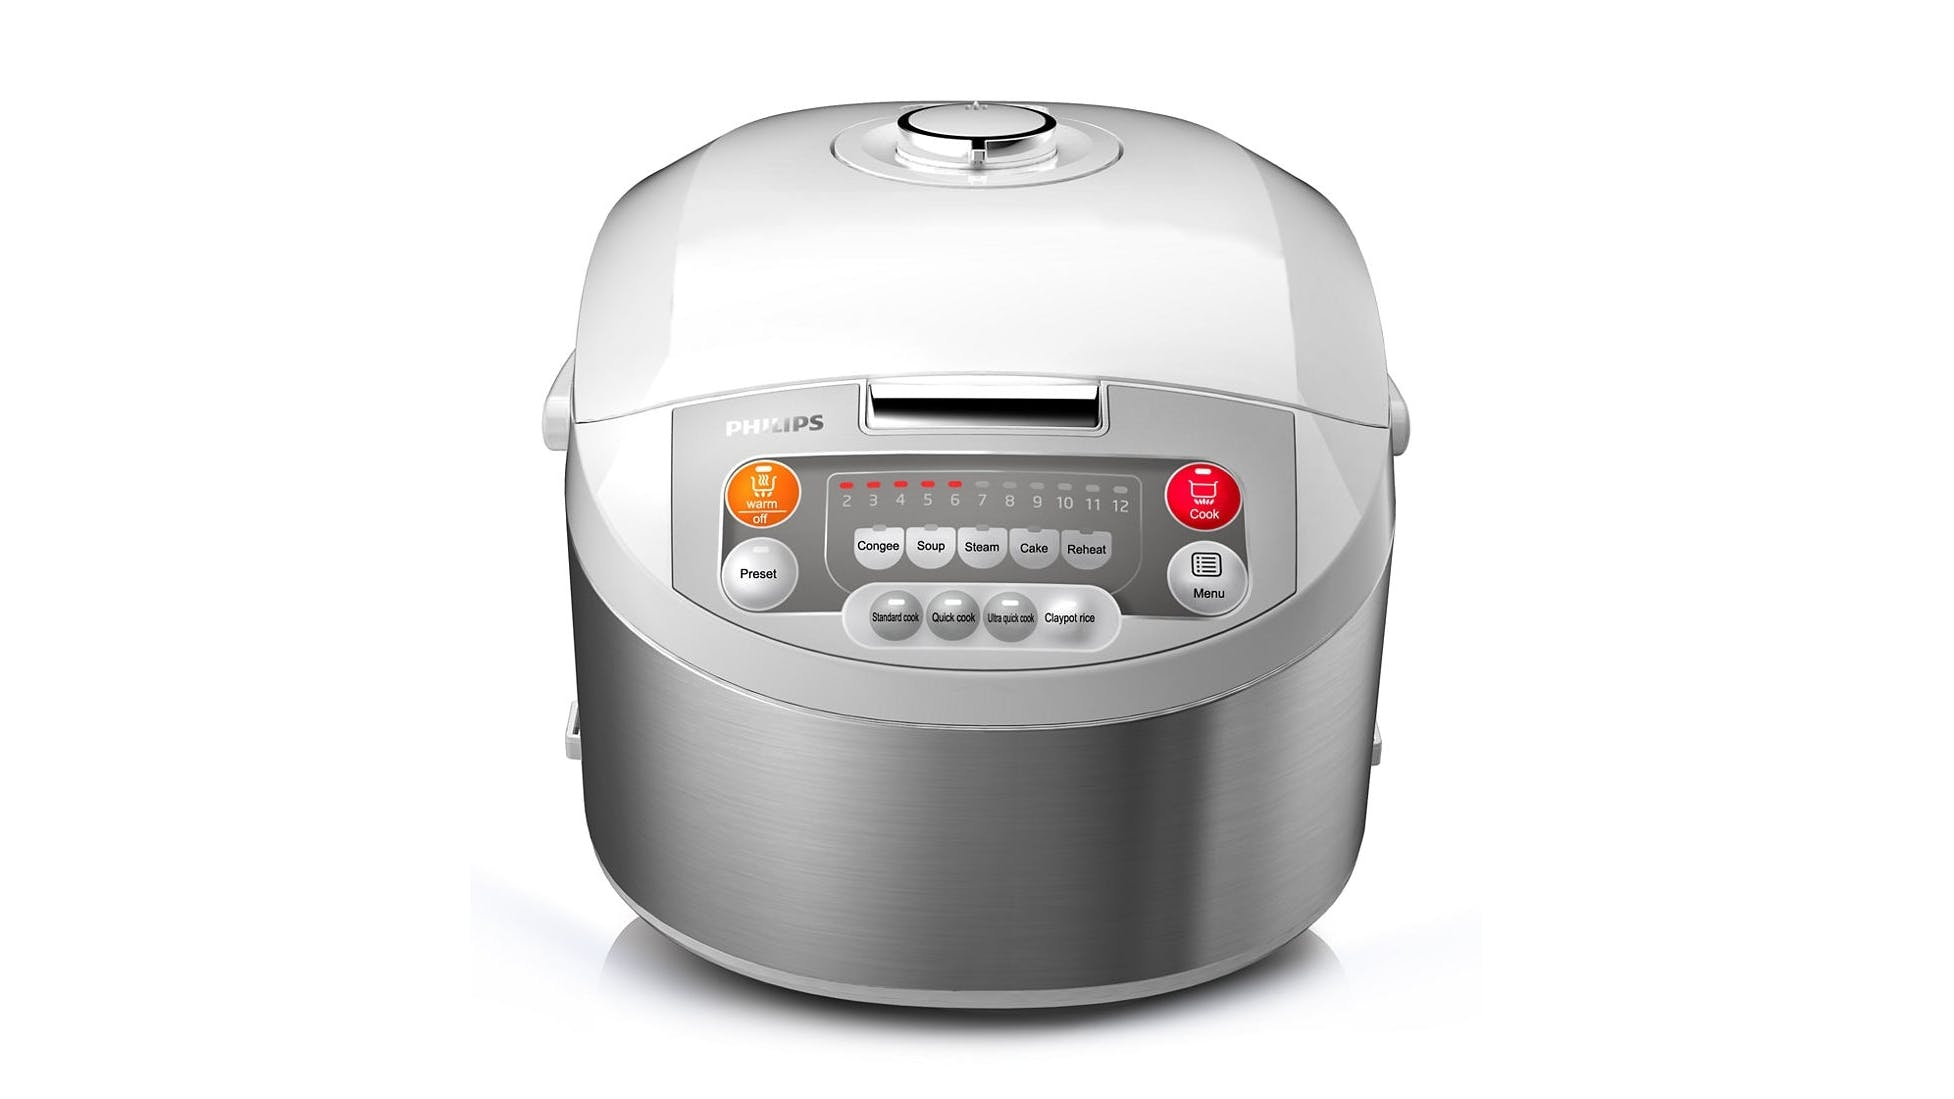 6f16d951bca Philips Viva Collection Fuzzy Logic 1.8L Rice Cooker